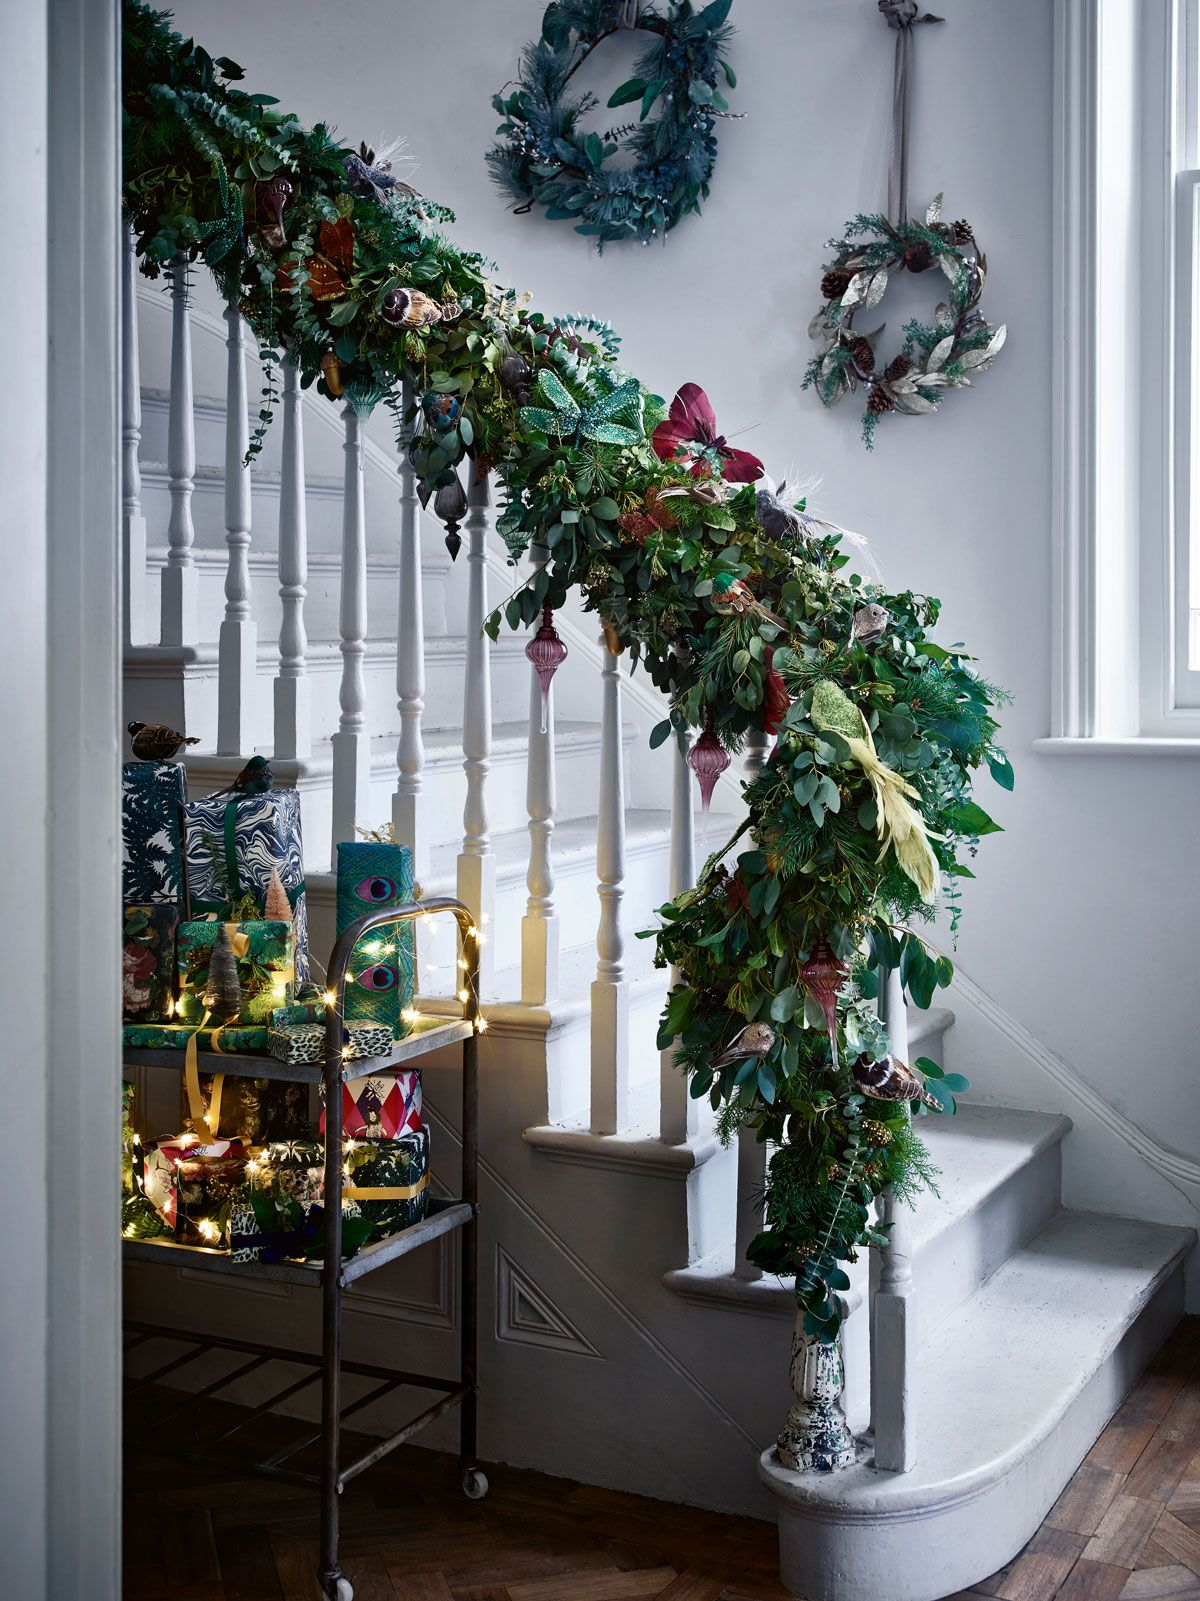 Kick off the Christmas illusion with a forest green garland